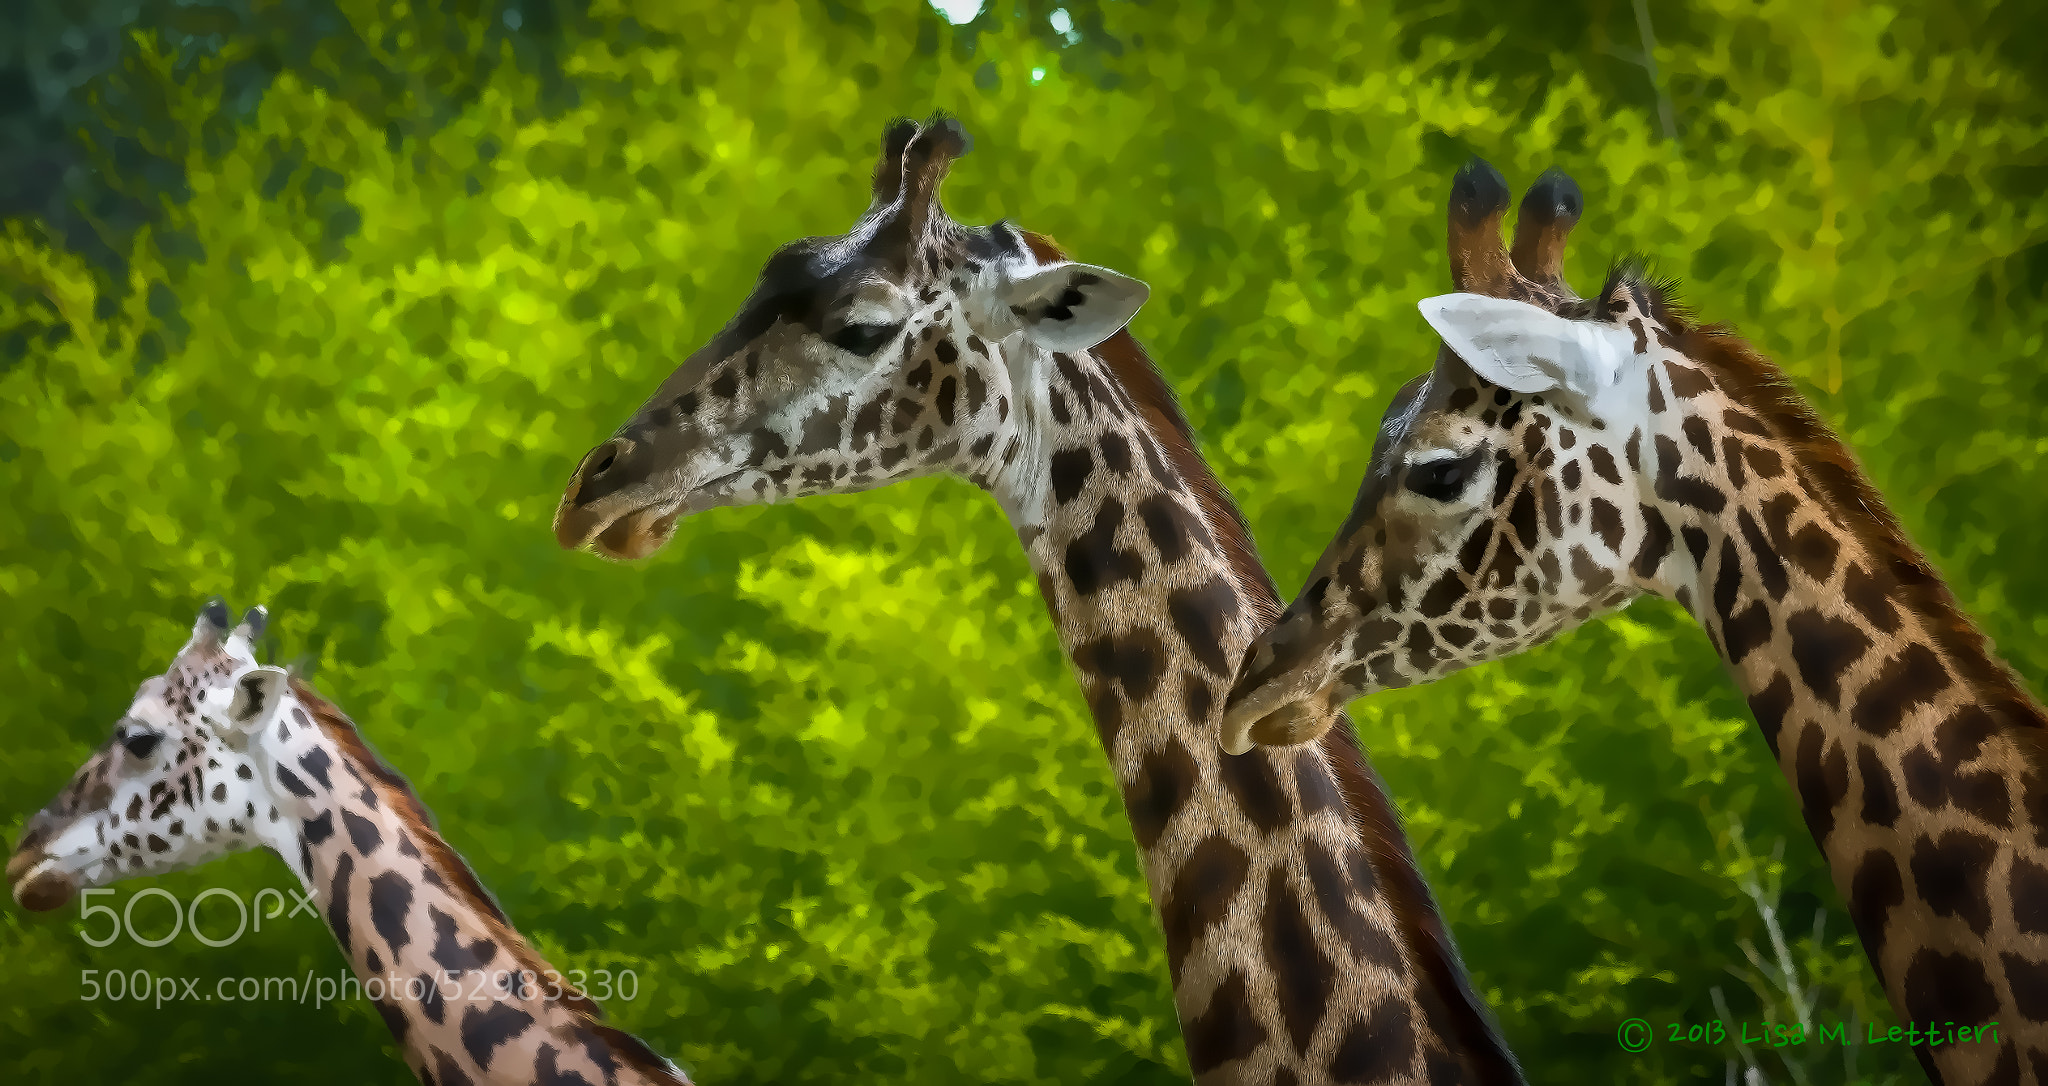 Photograph Three Amigos by Lisa Lettieri on 500px